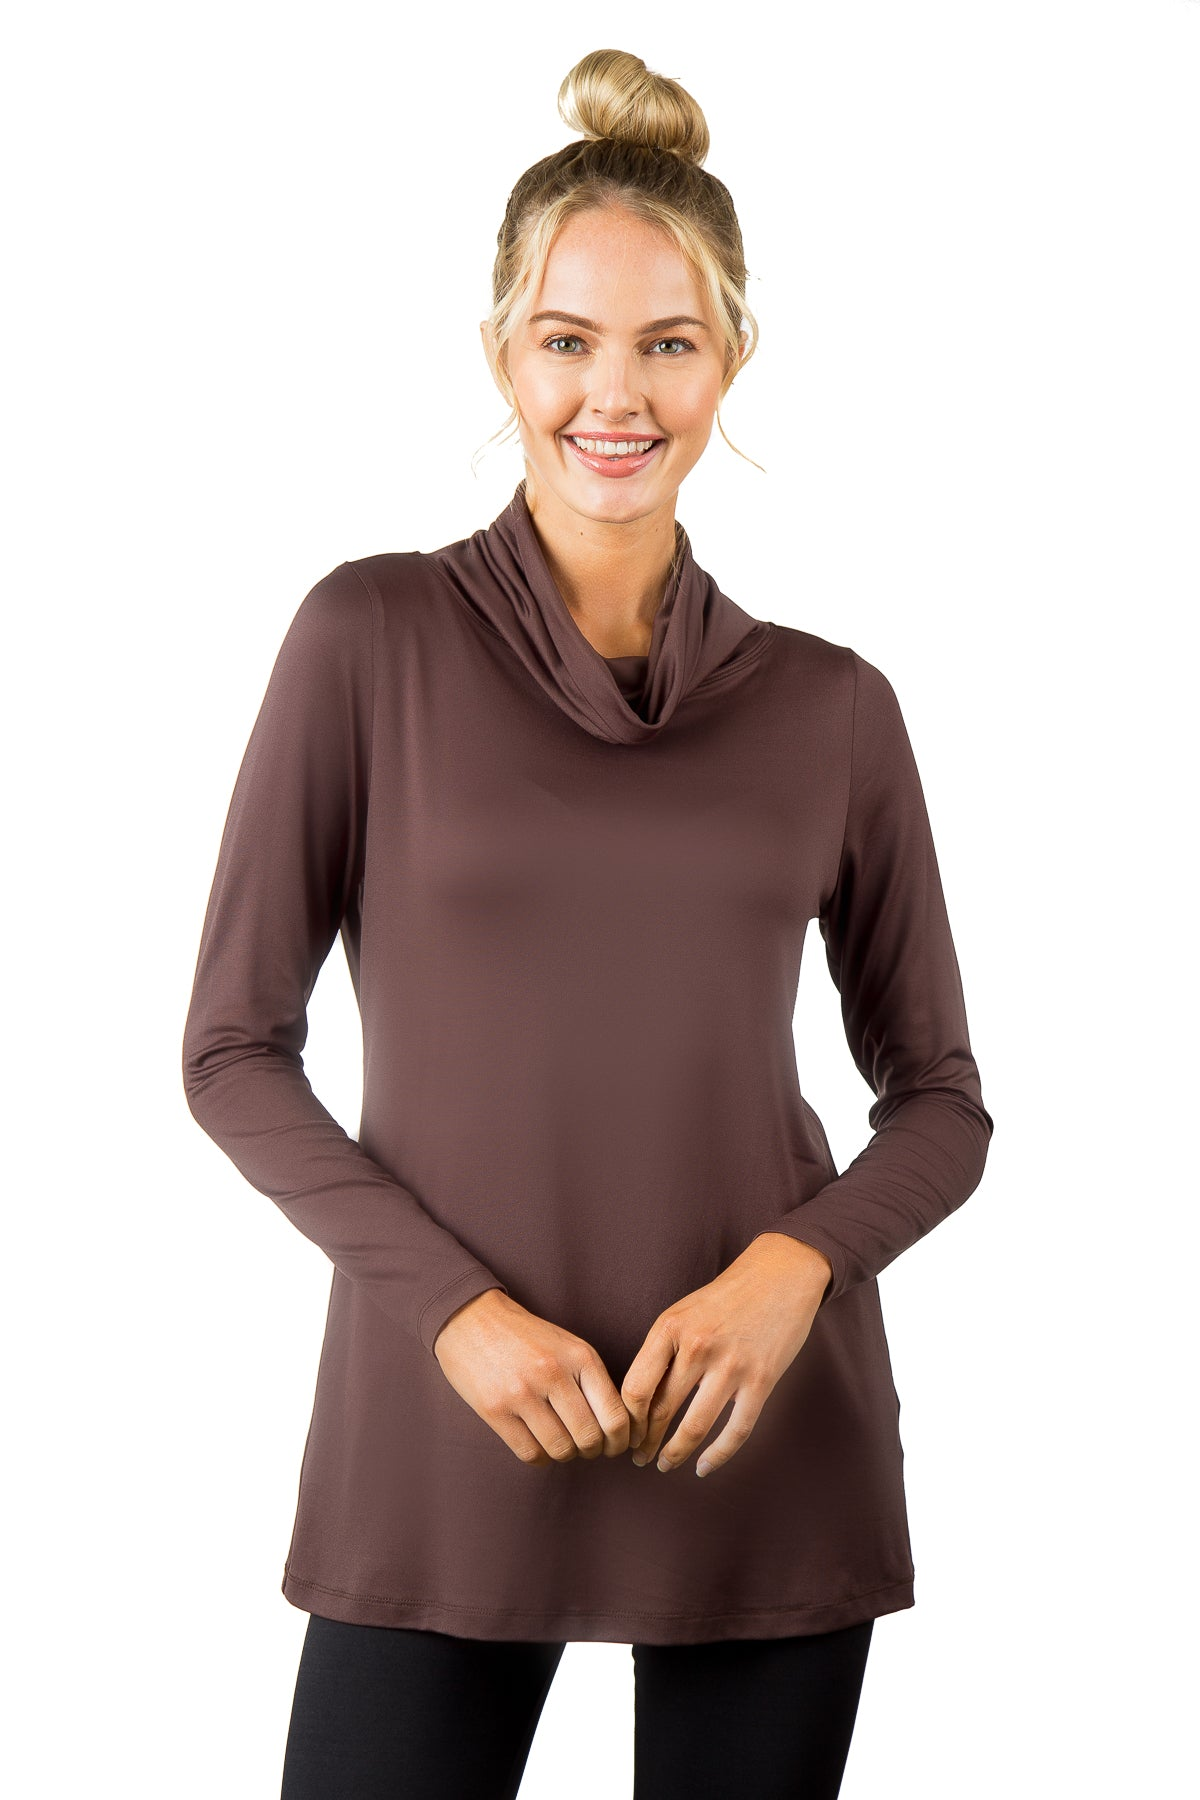 The Cowl Neck Tunic